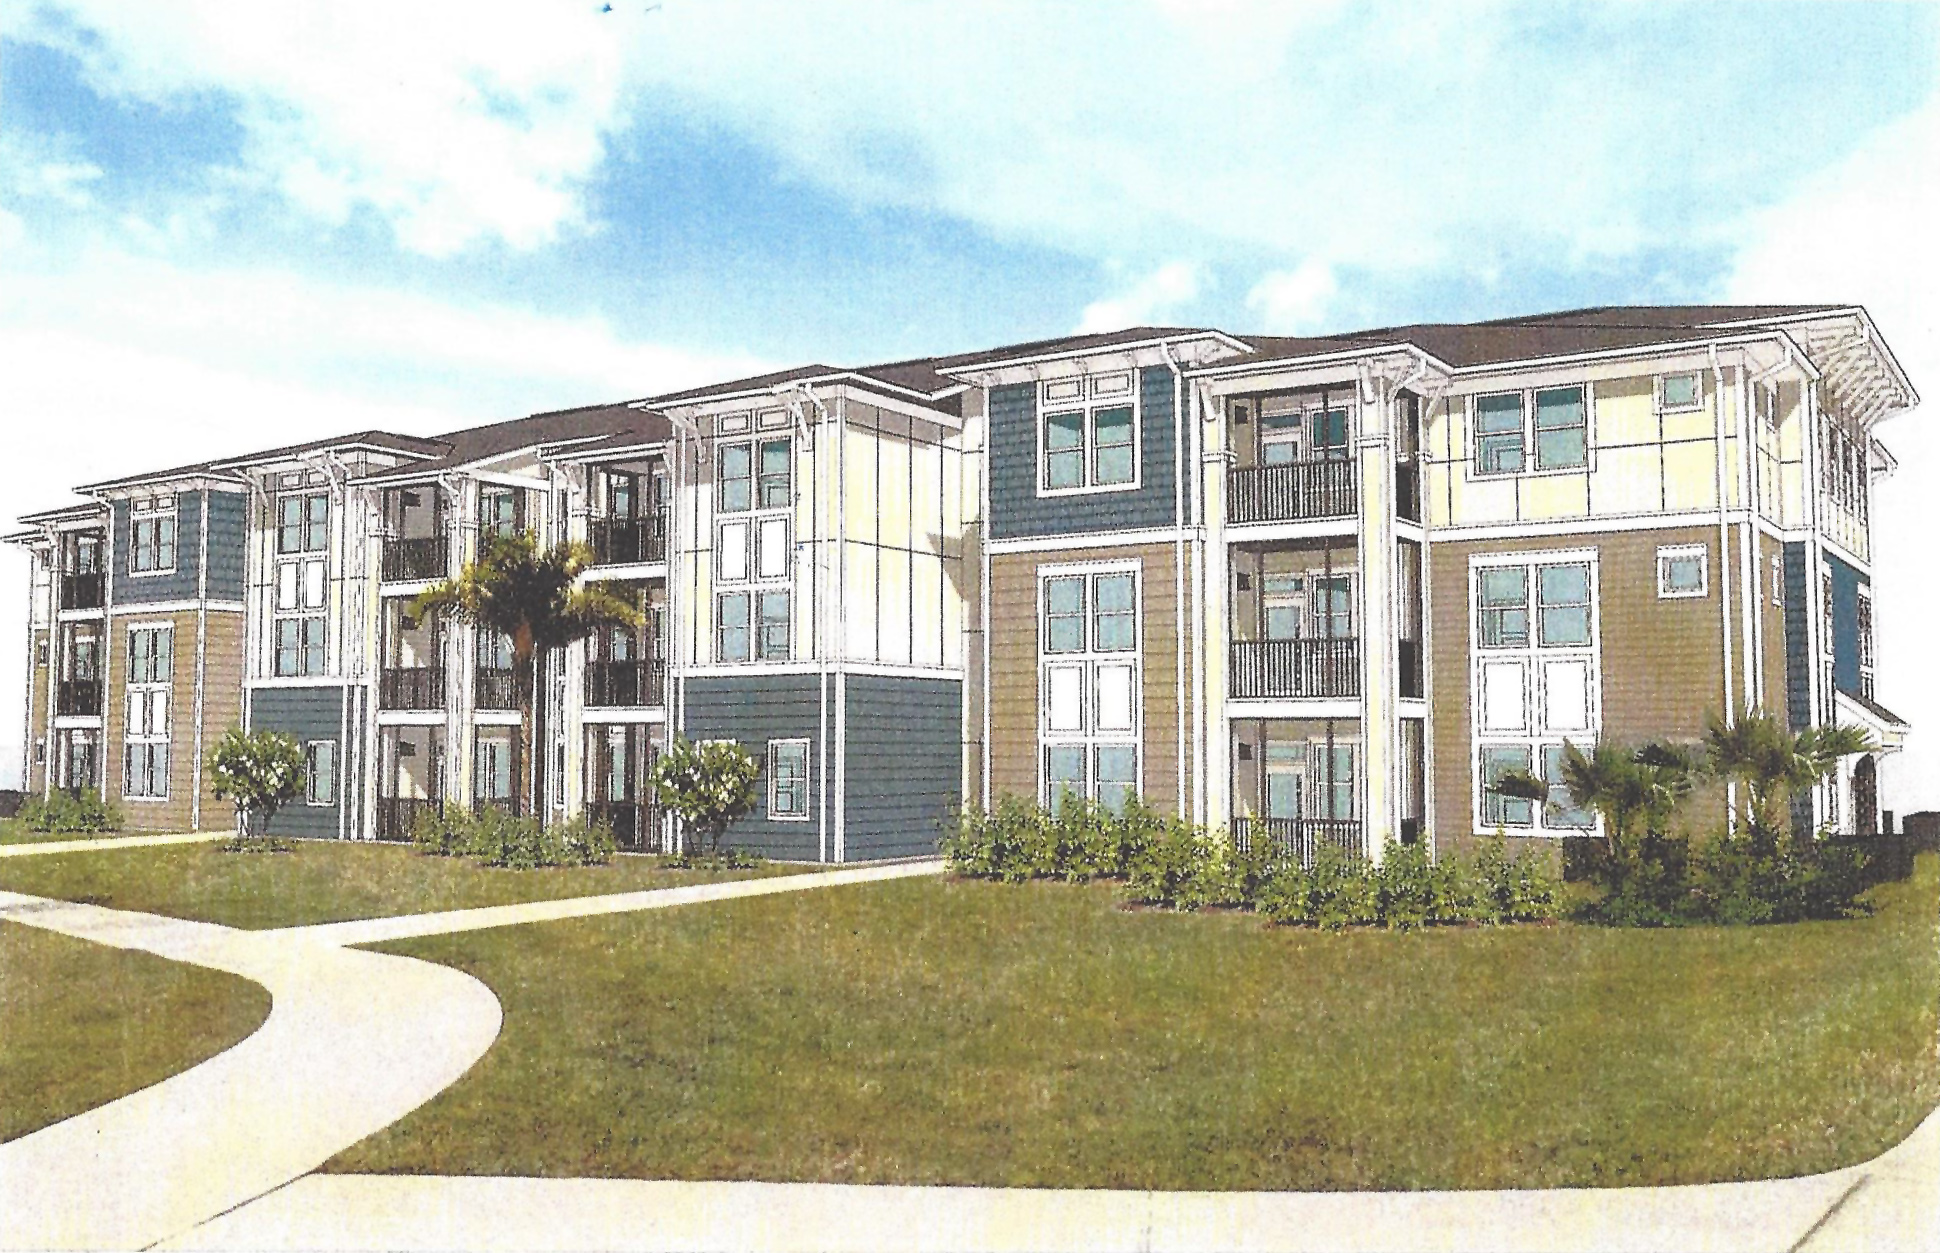 As golf's popularity wanes, here's the new look of one Tampa Bay golf course: luxury apartments